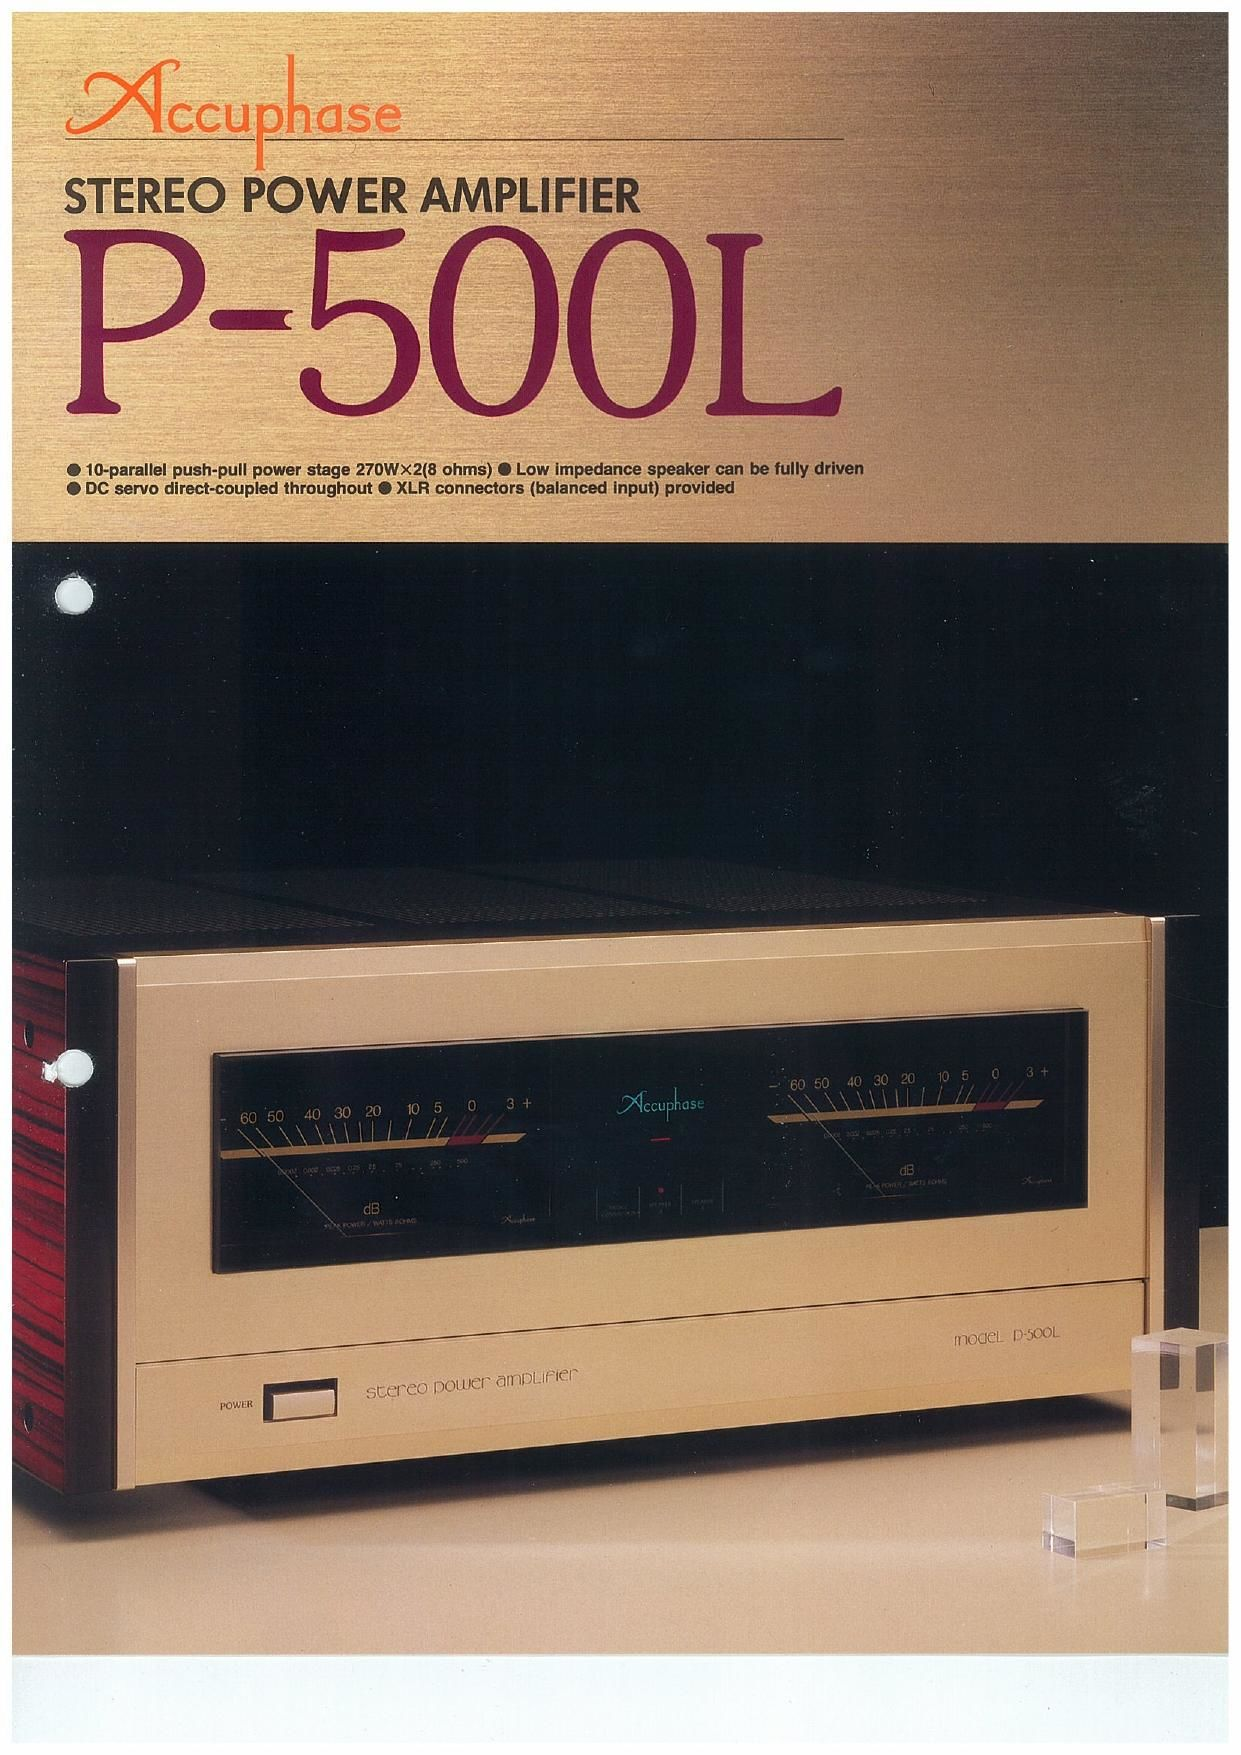 Accuphase P 500 L Brochure